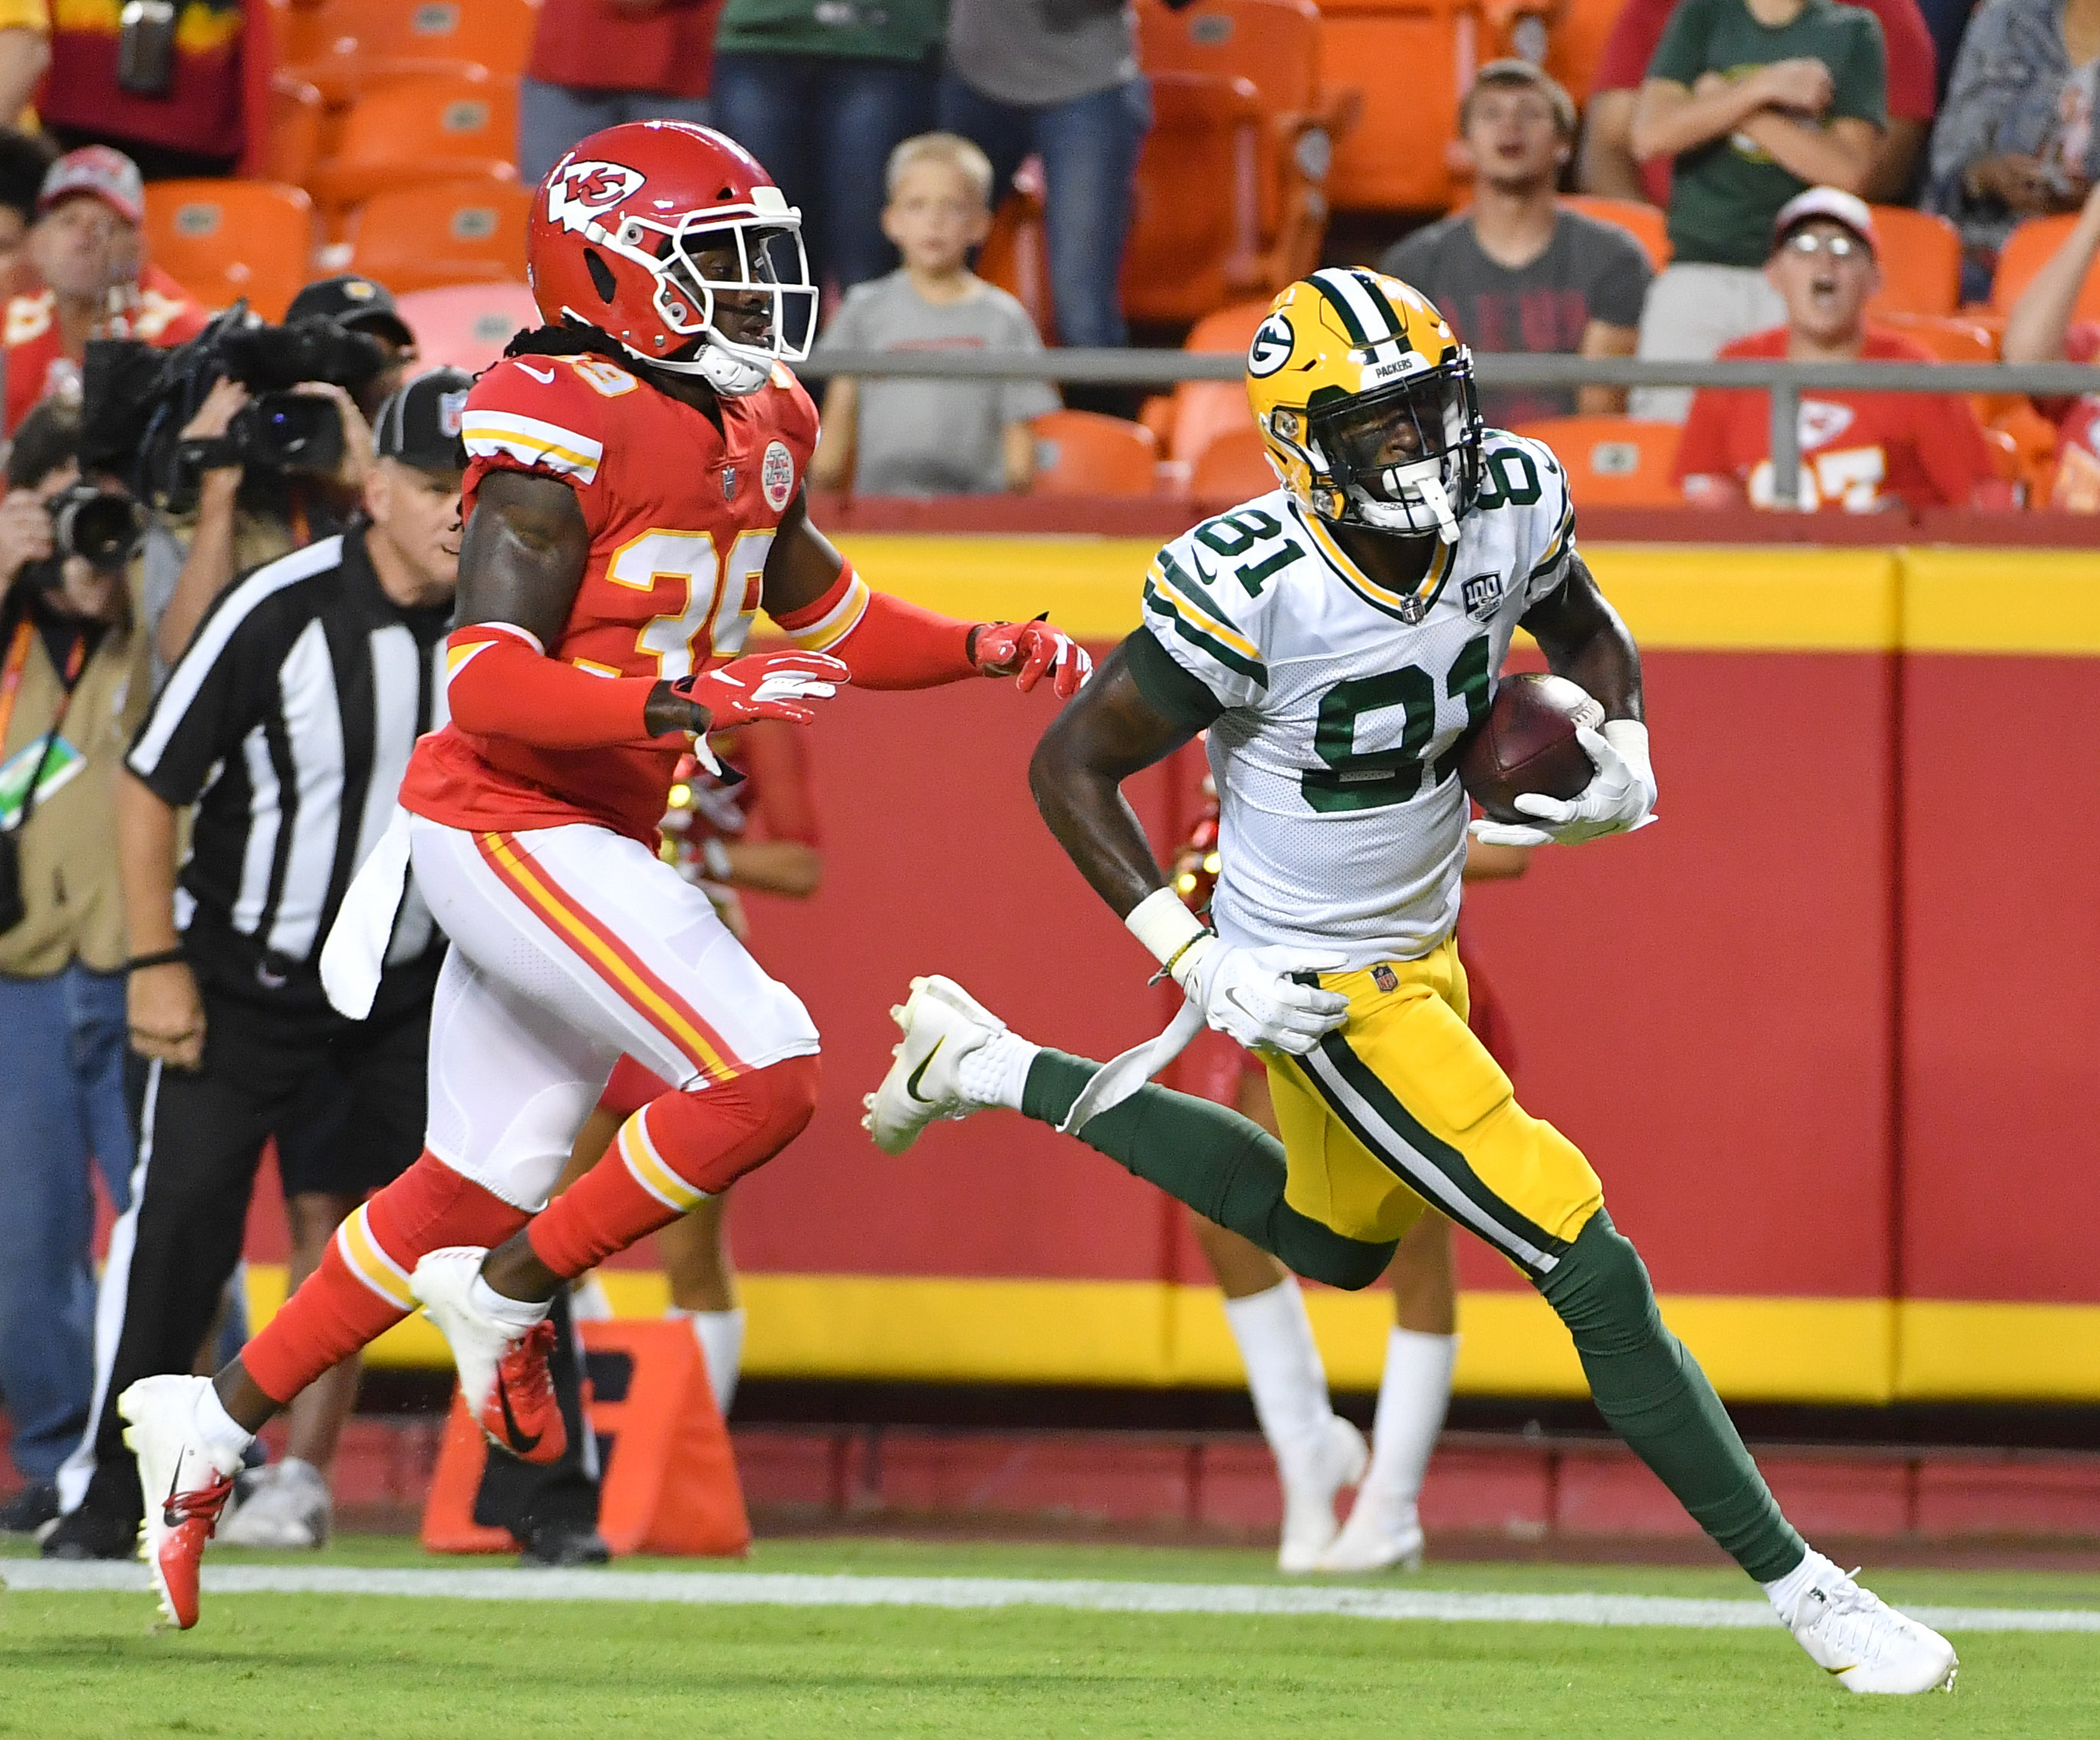 Six Key Factors That Will Determine the Winner of Packers vs Chiefs